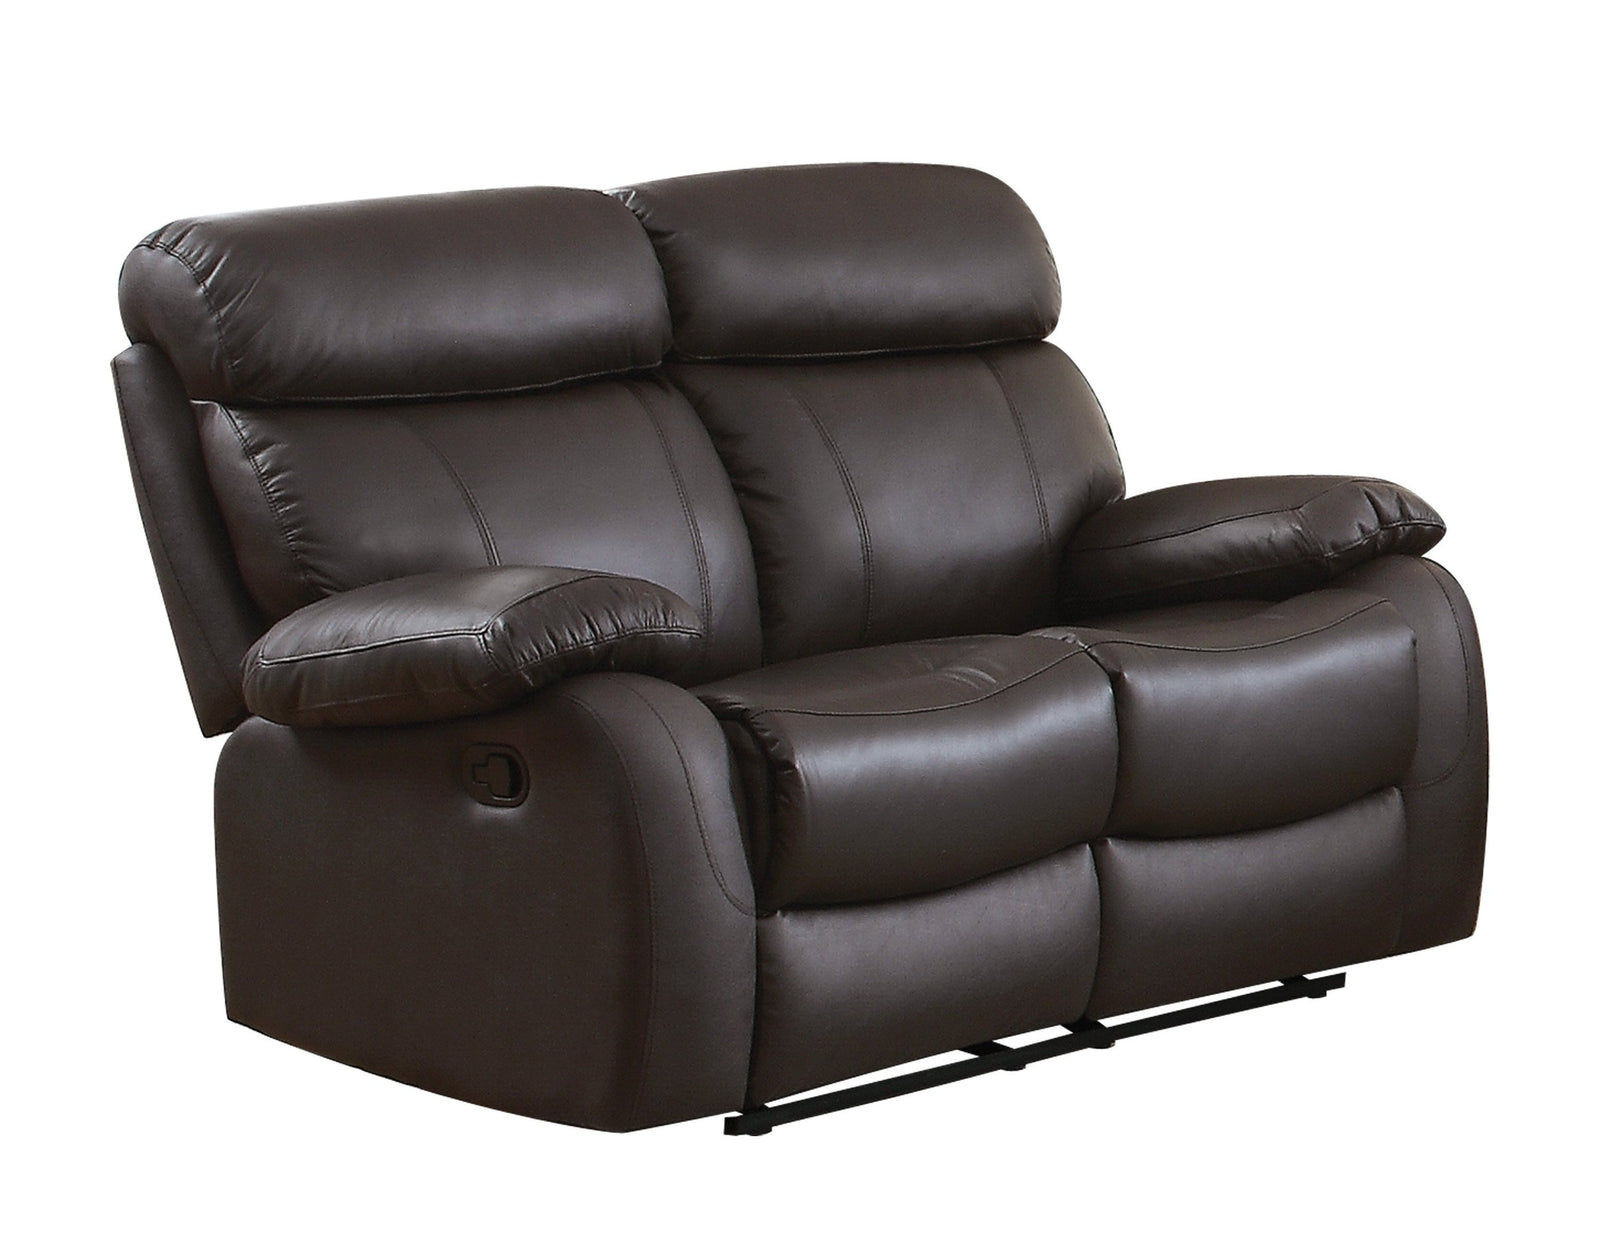 Jackson Recliner - Brown